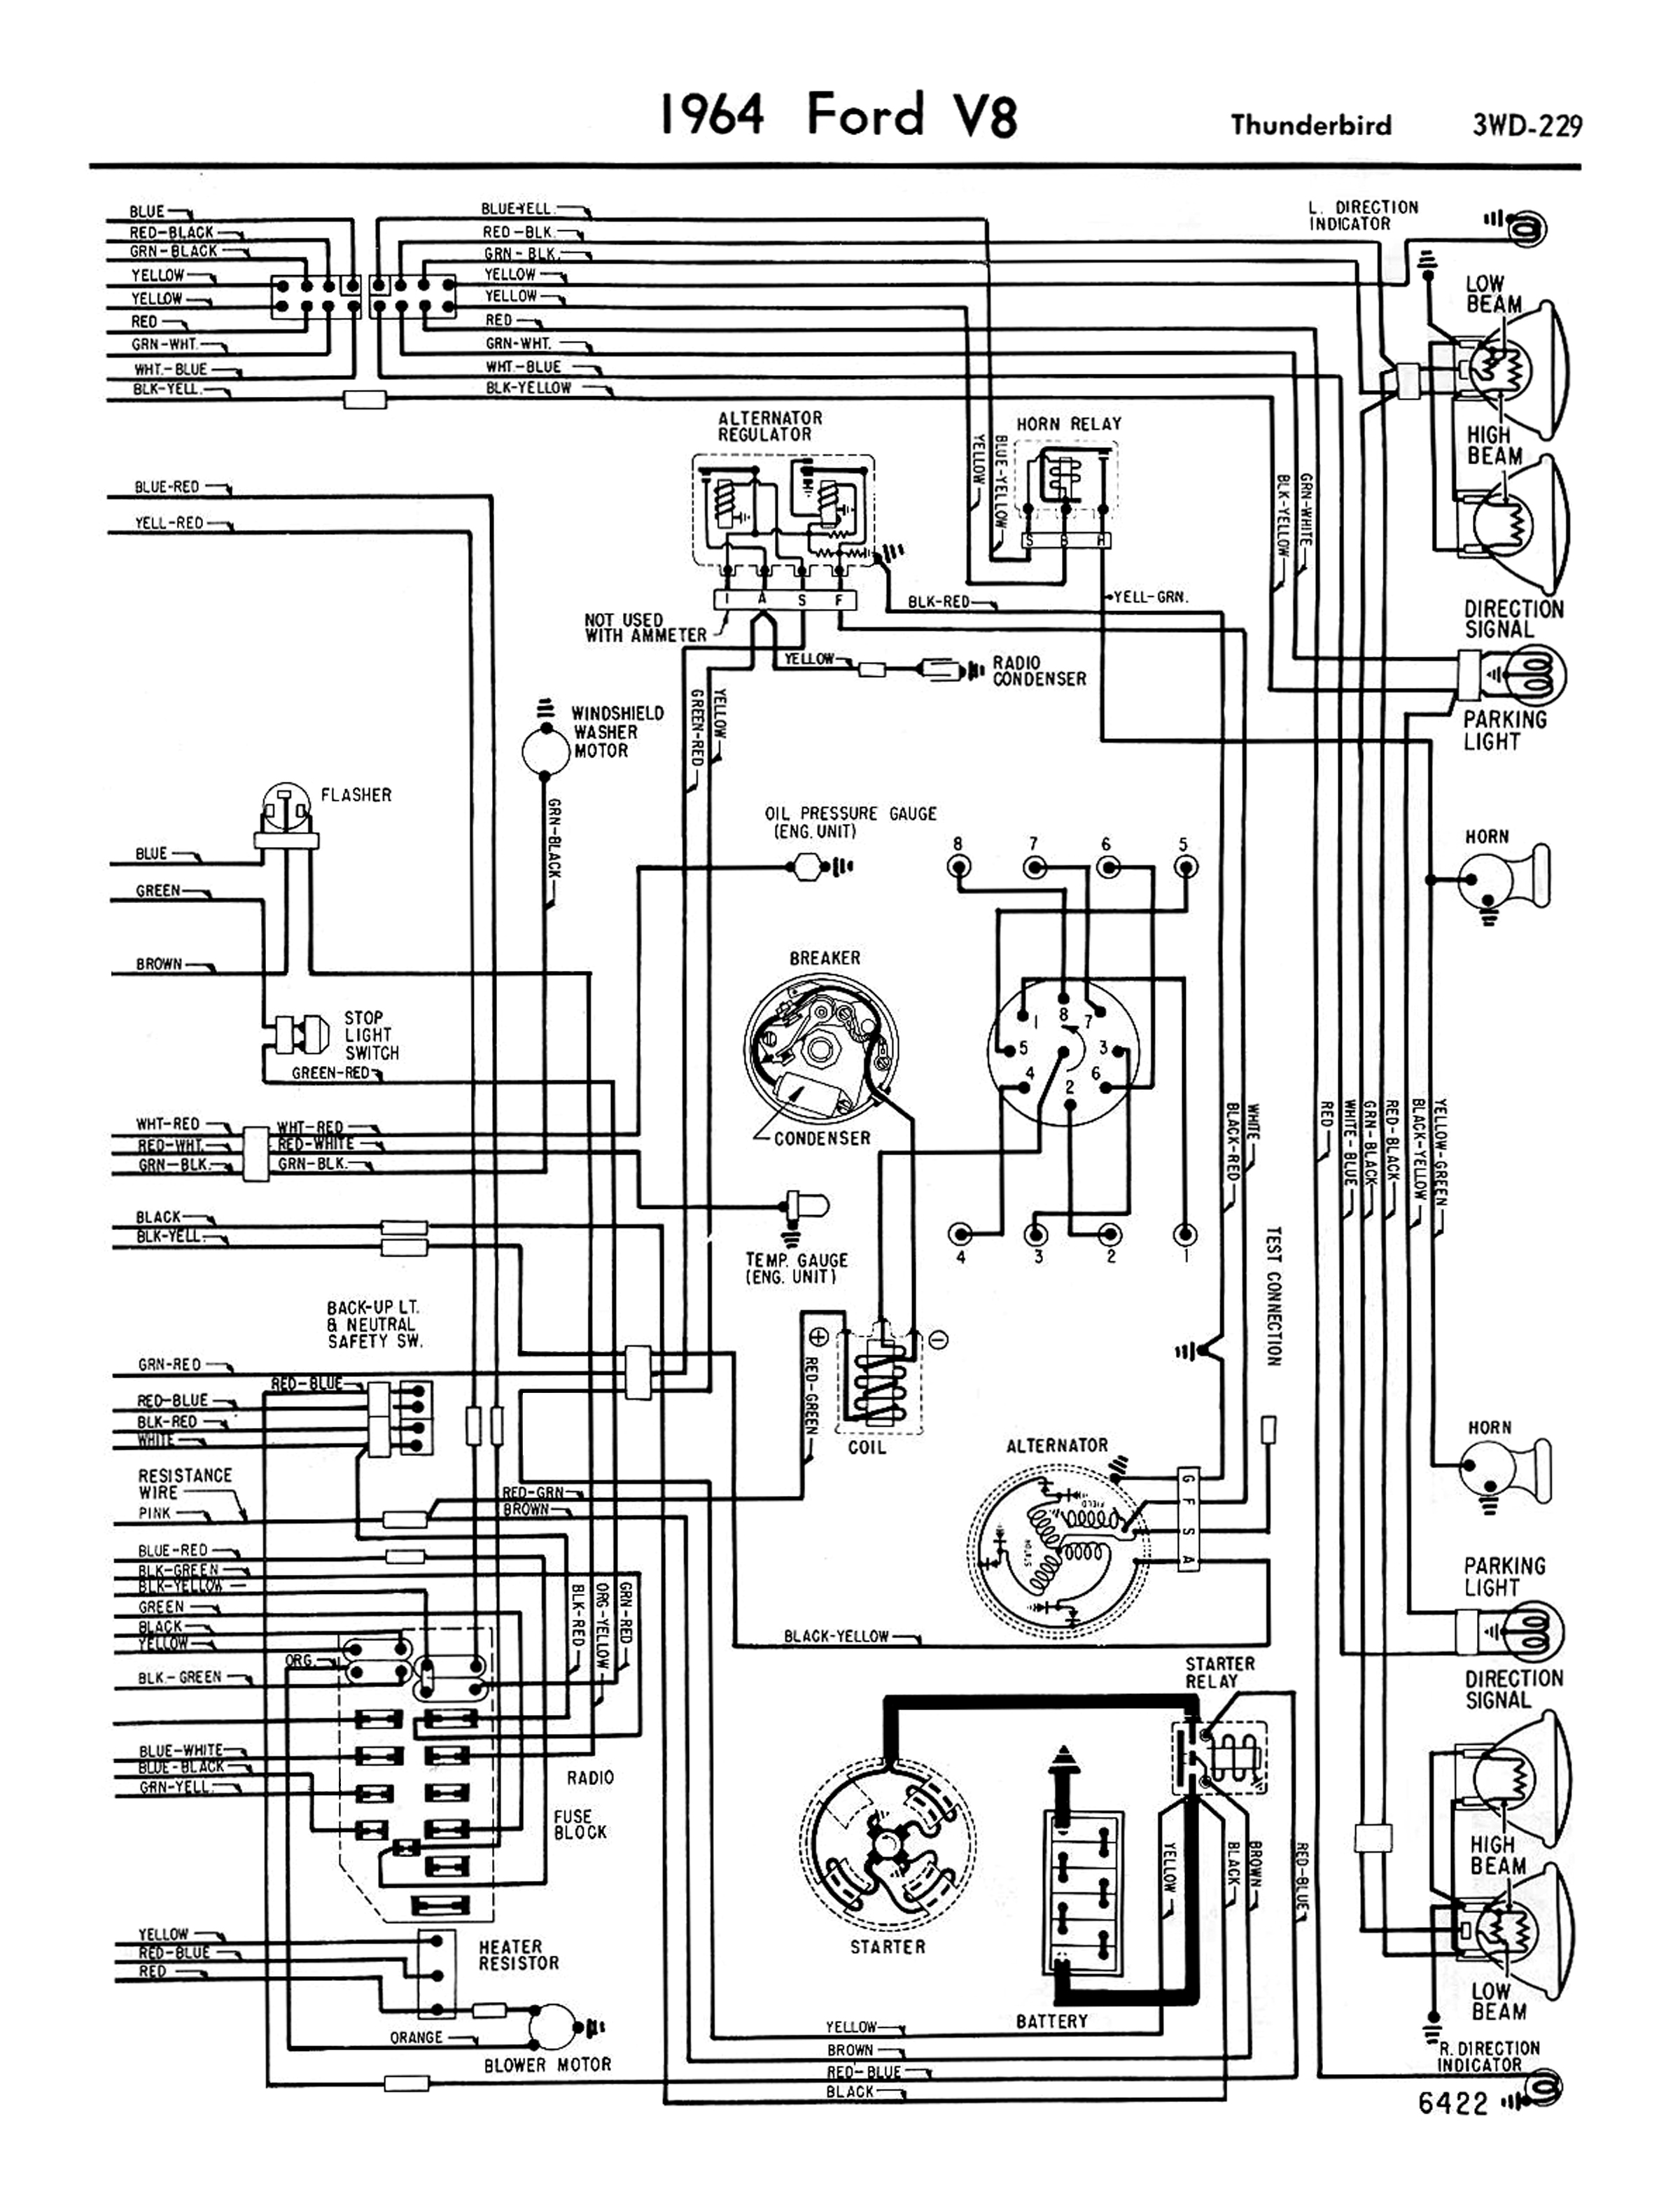 64TbirdWiringDiagramRight 1958 68 ford electrical schematics 1965 ford thunderbird wiring diagram at crackthecode.co